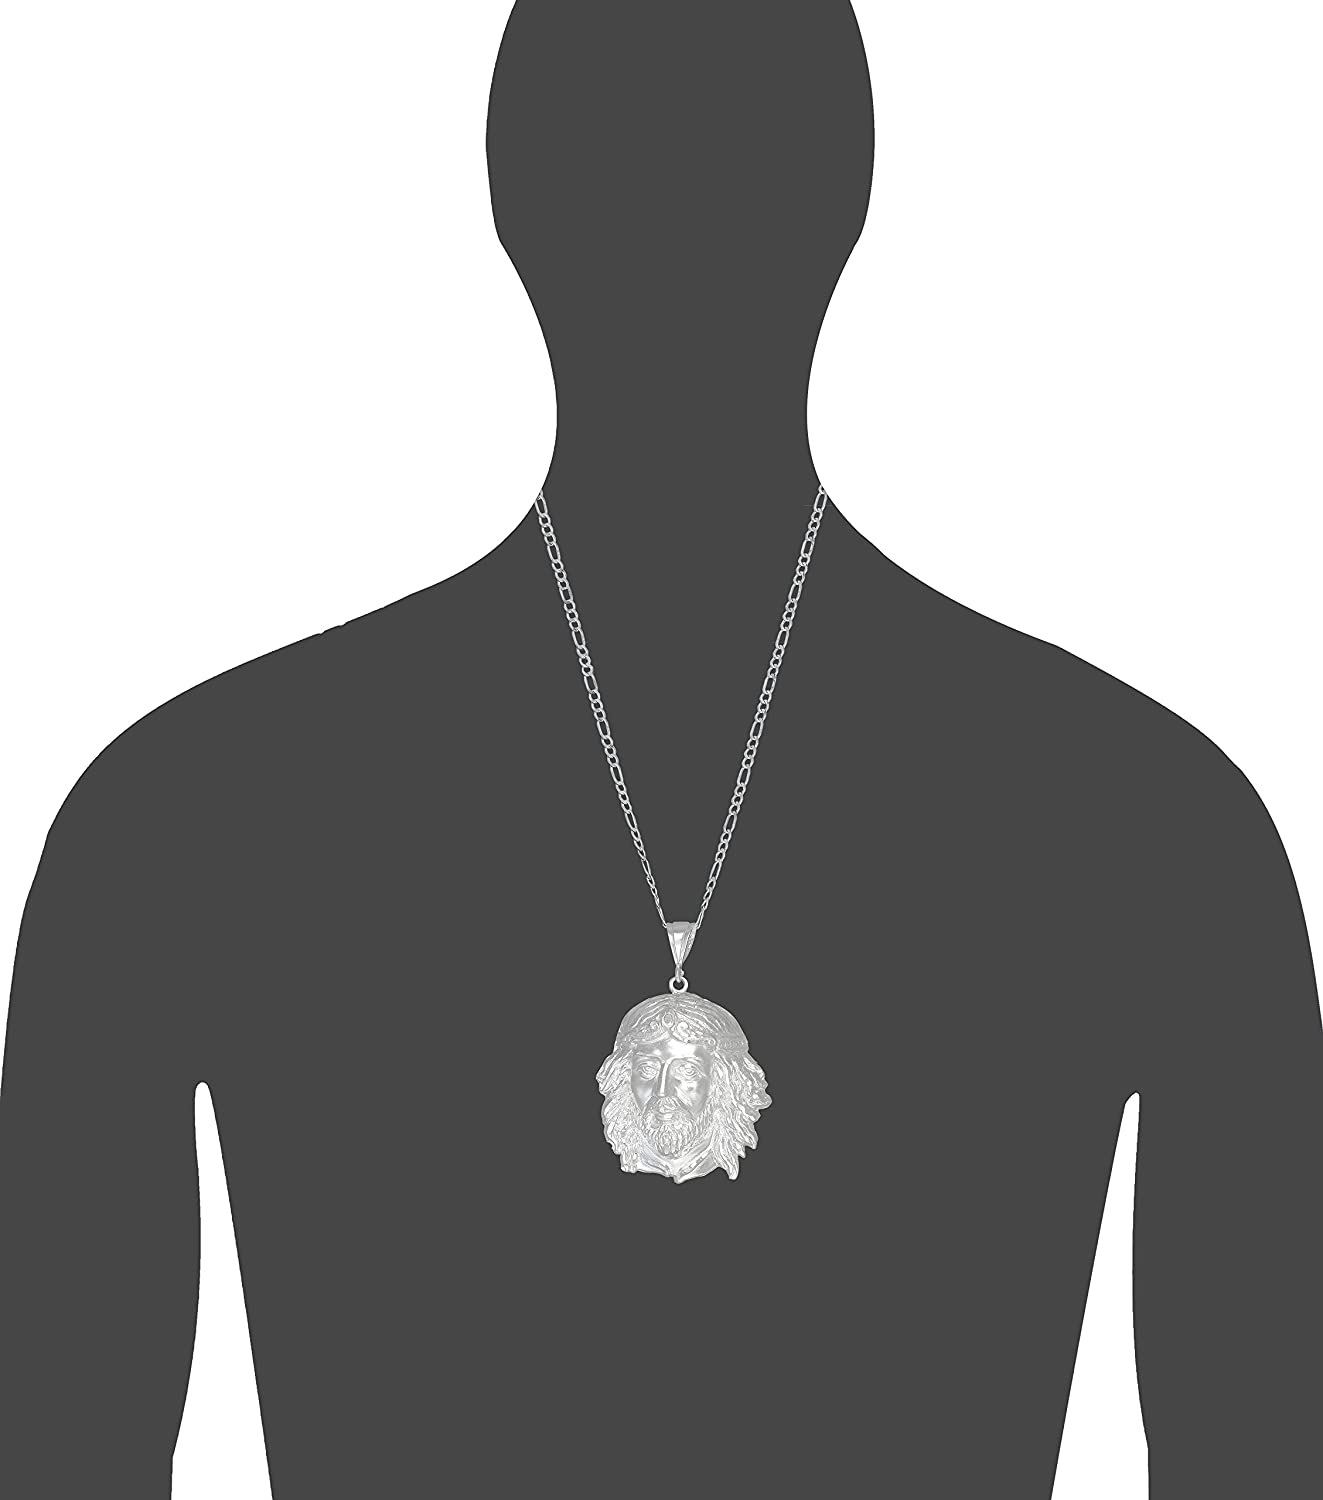 Sterling Silver Jesus Pendant Necklace Diamond Cut Finish with 24 Inch Chain